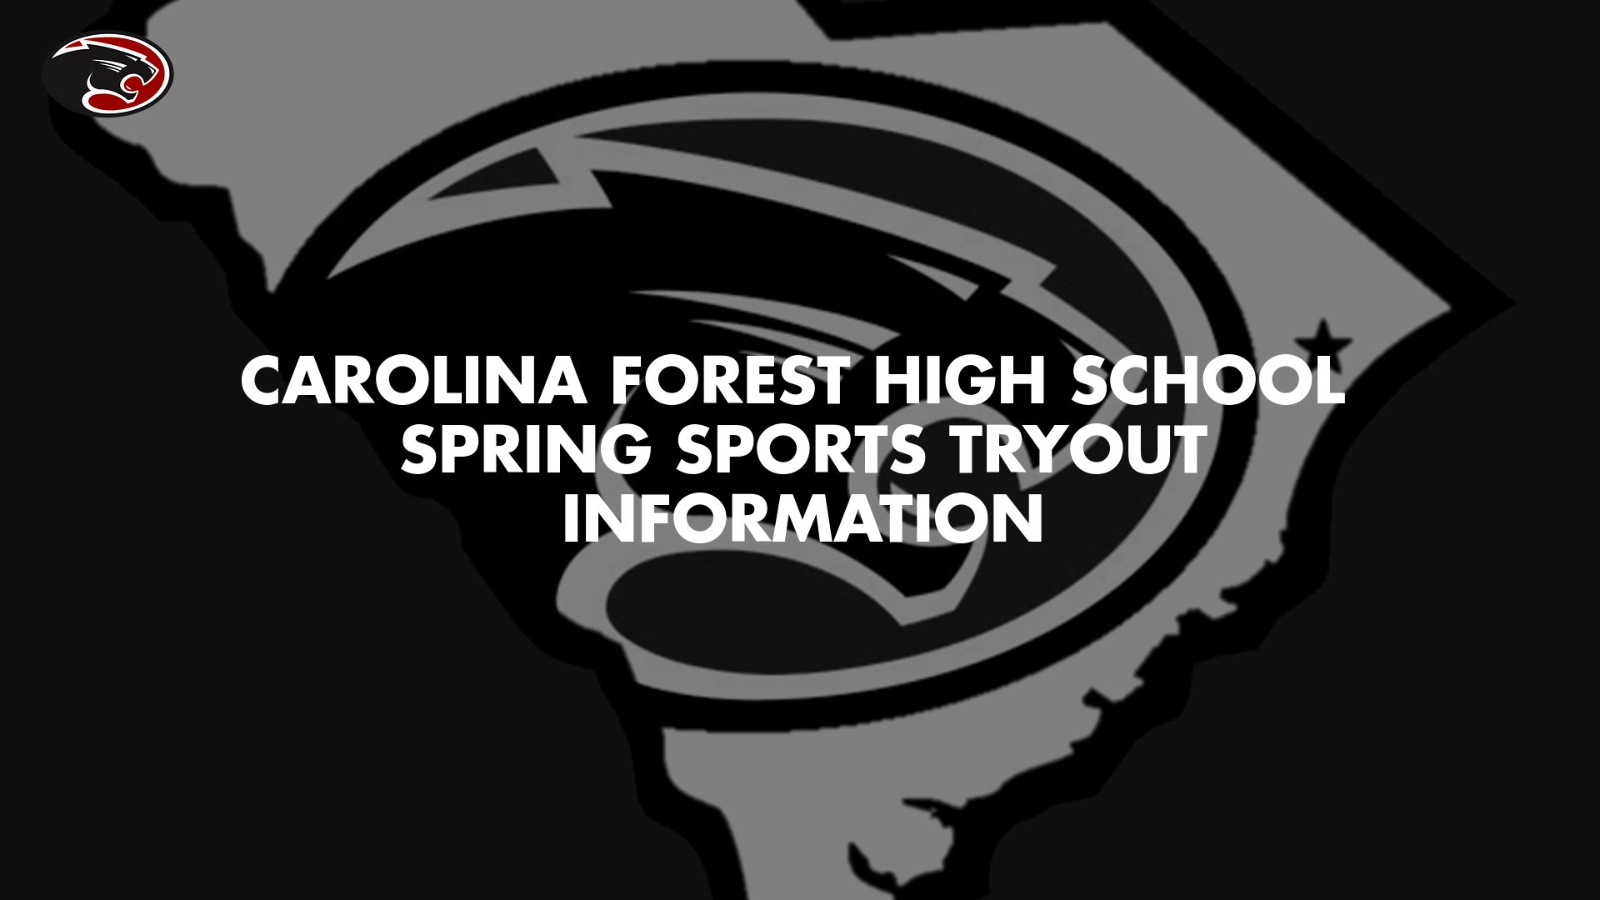 2021 Spring Sports Tryout Information